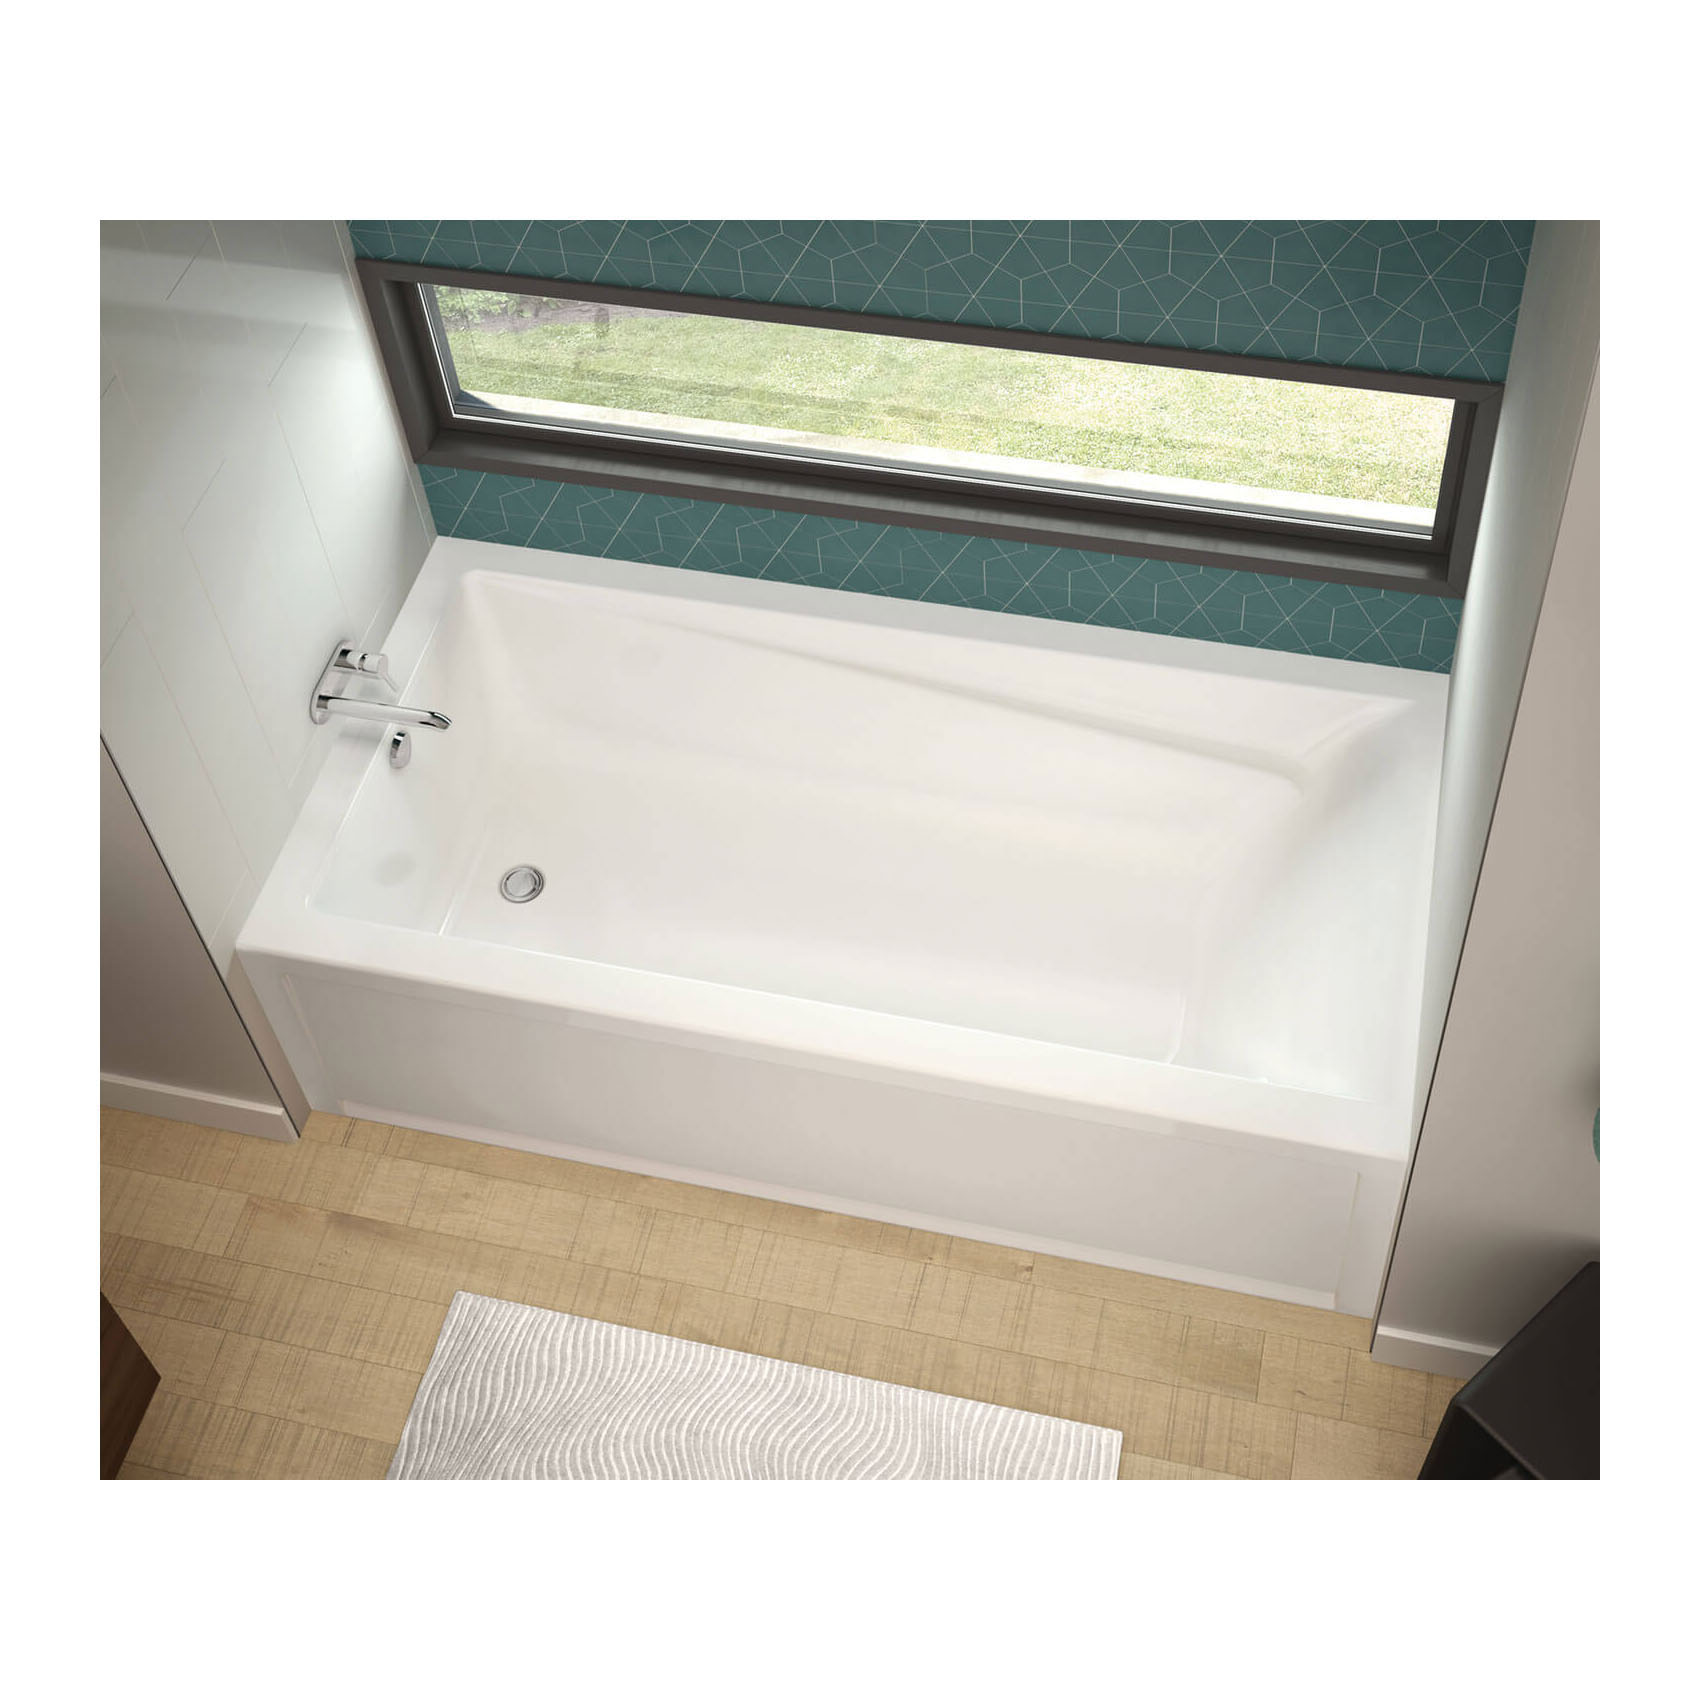 MAAX® 106184-L-000-001 Exhibit 7236 IFS AFR Bathtub With Armrest, Bath Therapy Type: Soaking, Rectangular, 71-7/8 in L x 36 in W, Left Drain, White